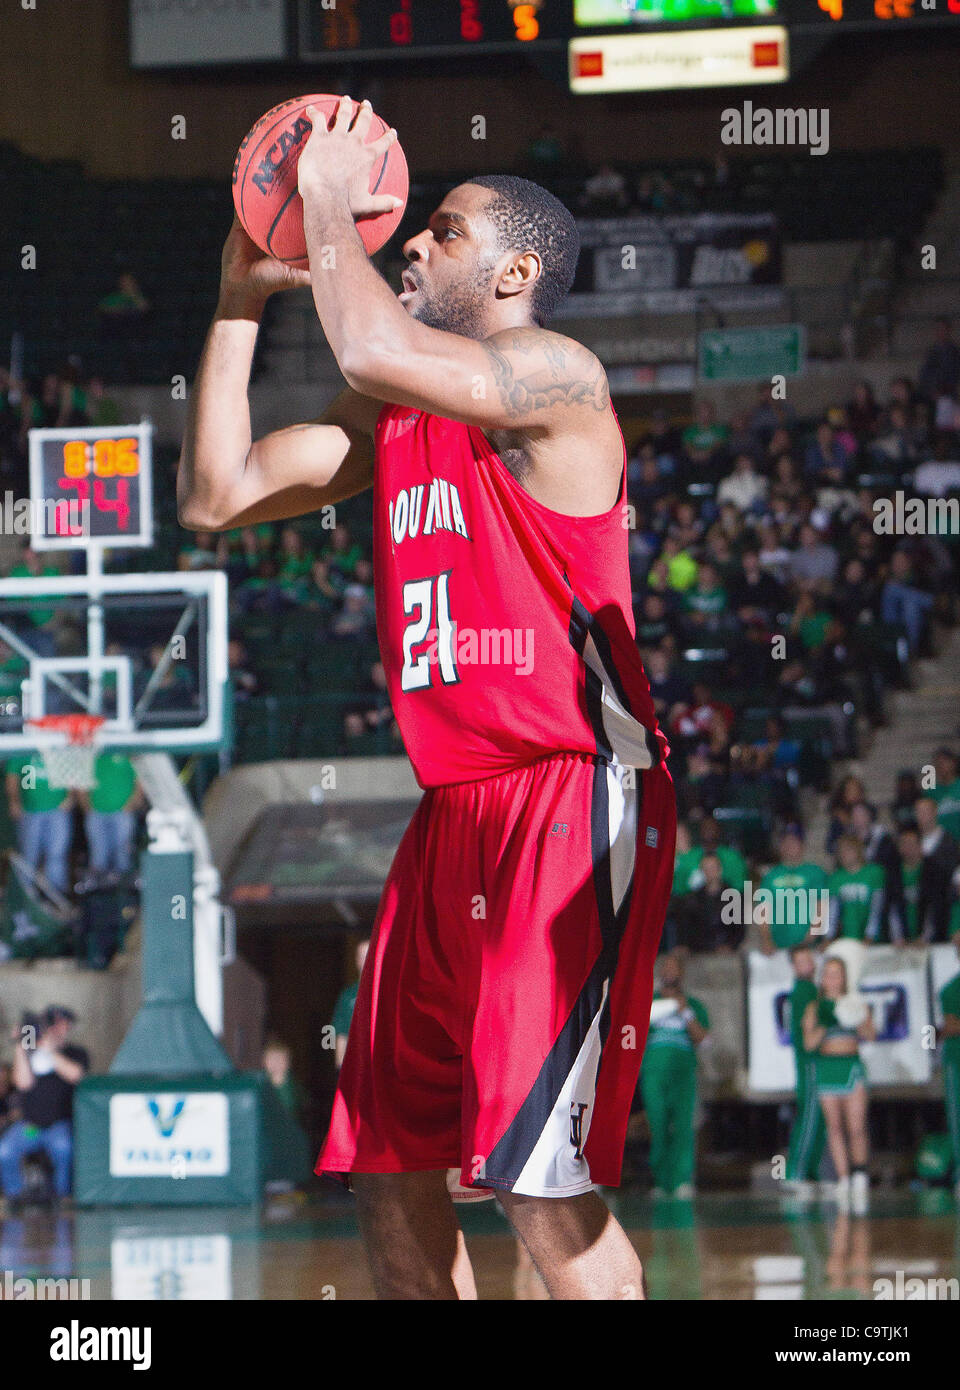 Feb. 18, 2012 - Denton, Texas, United States of America - Louisiana Lafayette Ragin Cajuns forward Darshawn McClellan - Stock Image